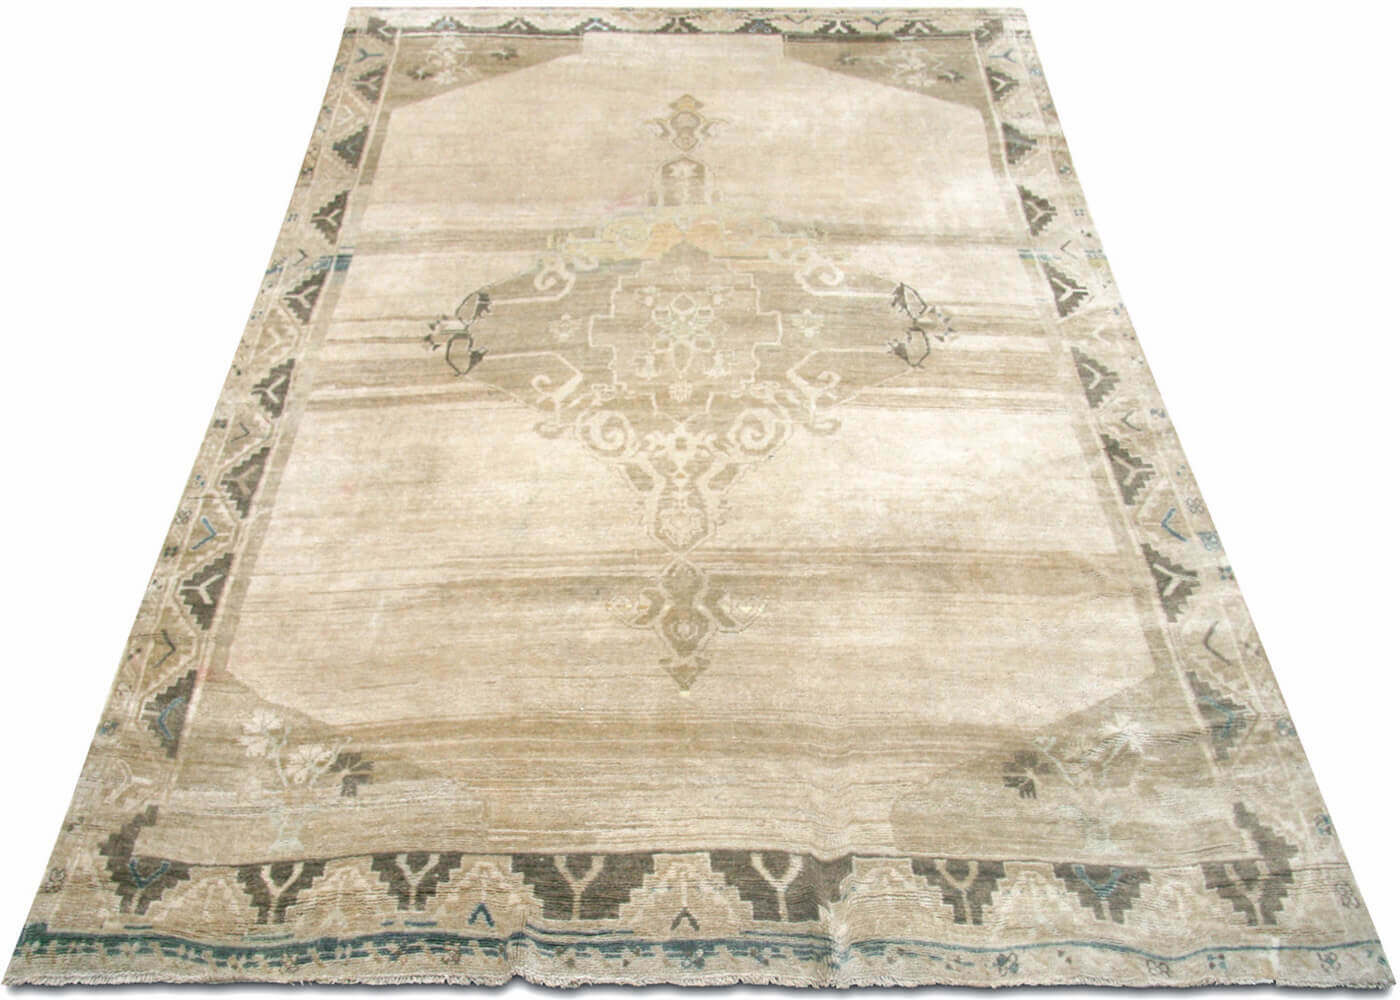 Vintage Turkish Oushak Carpet - 7' x 10'4""